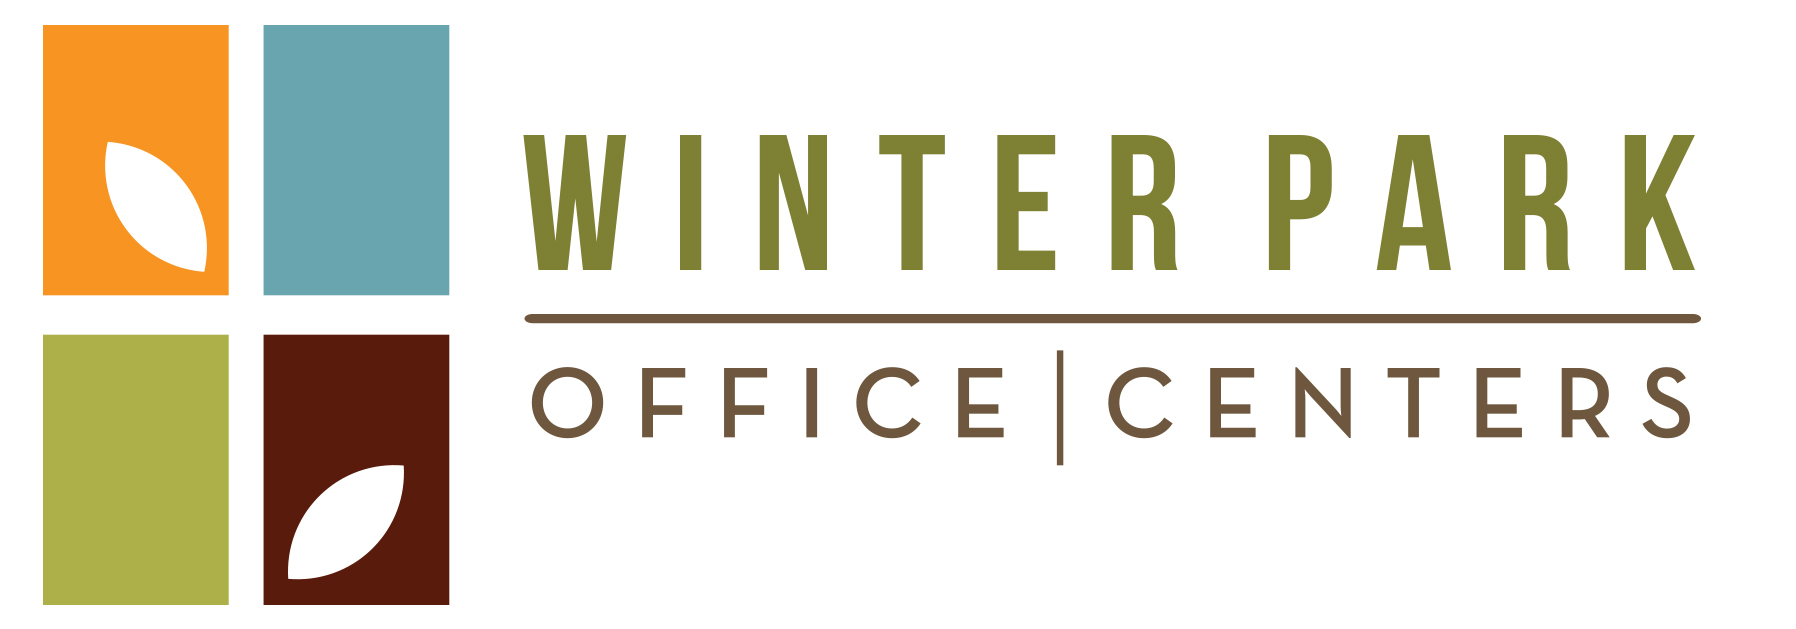 Winter Park Office Centers